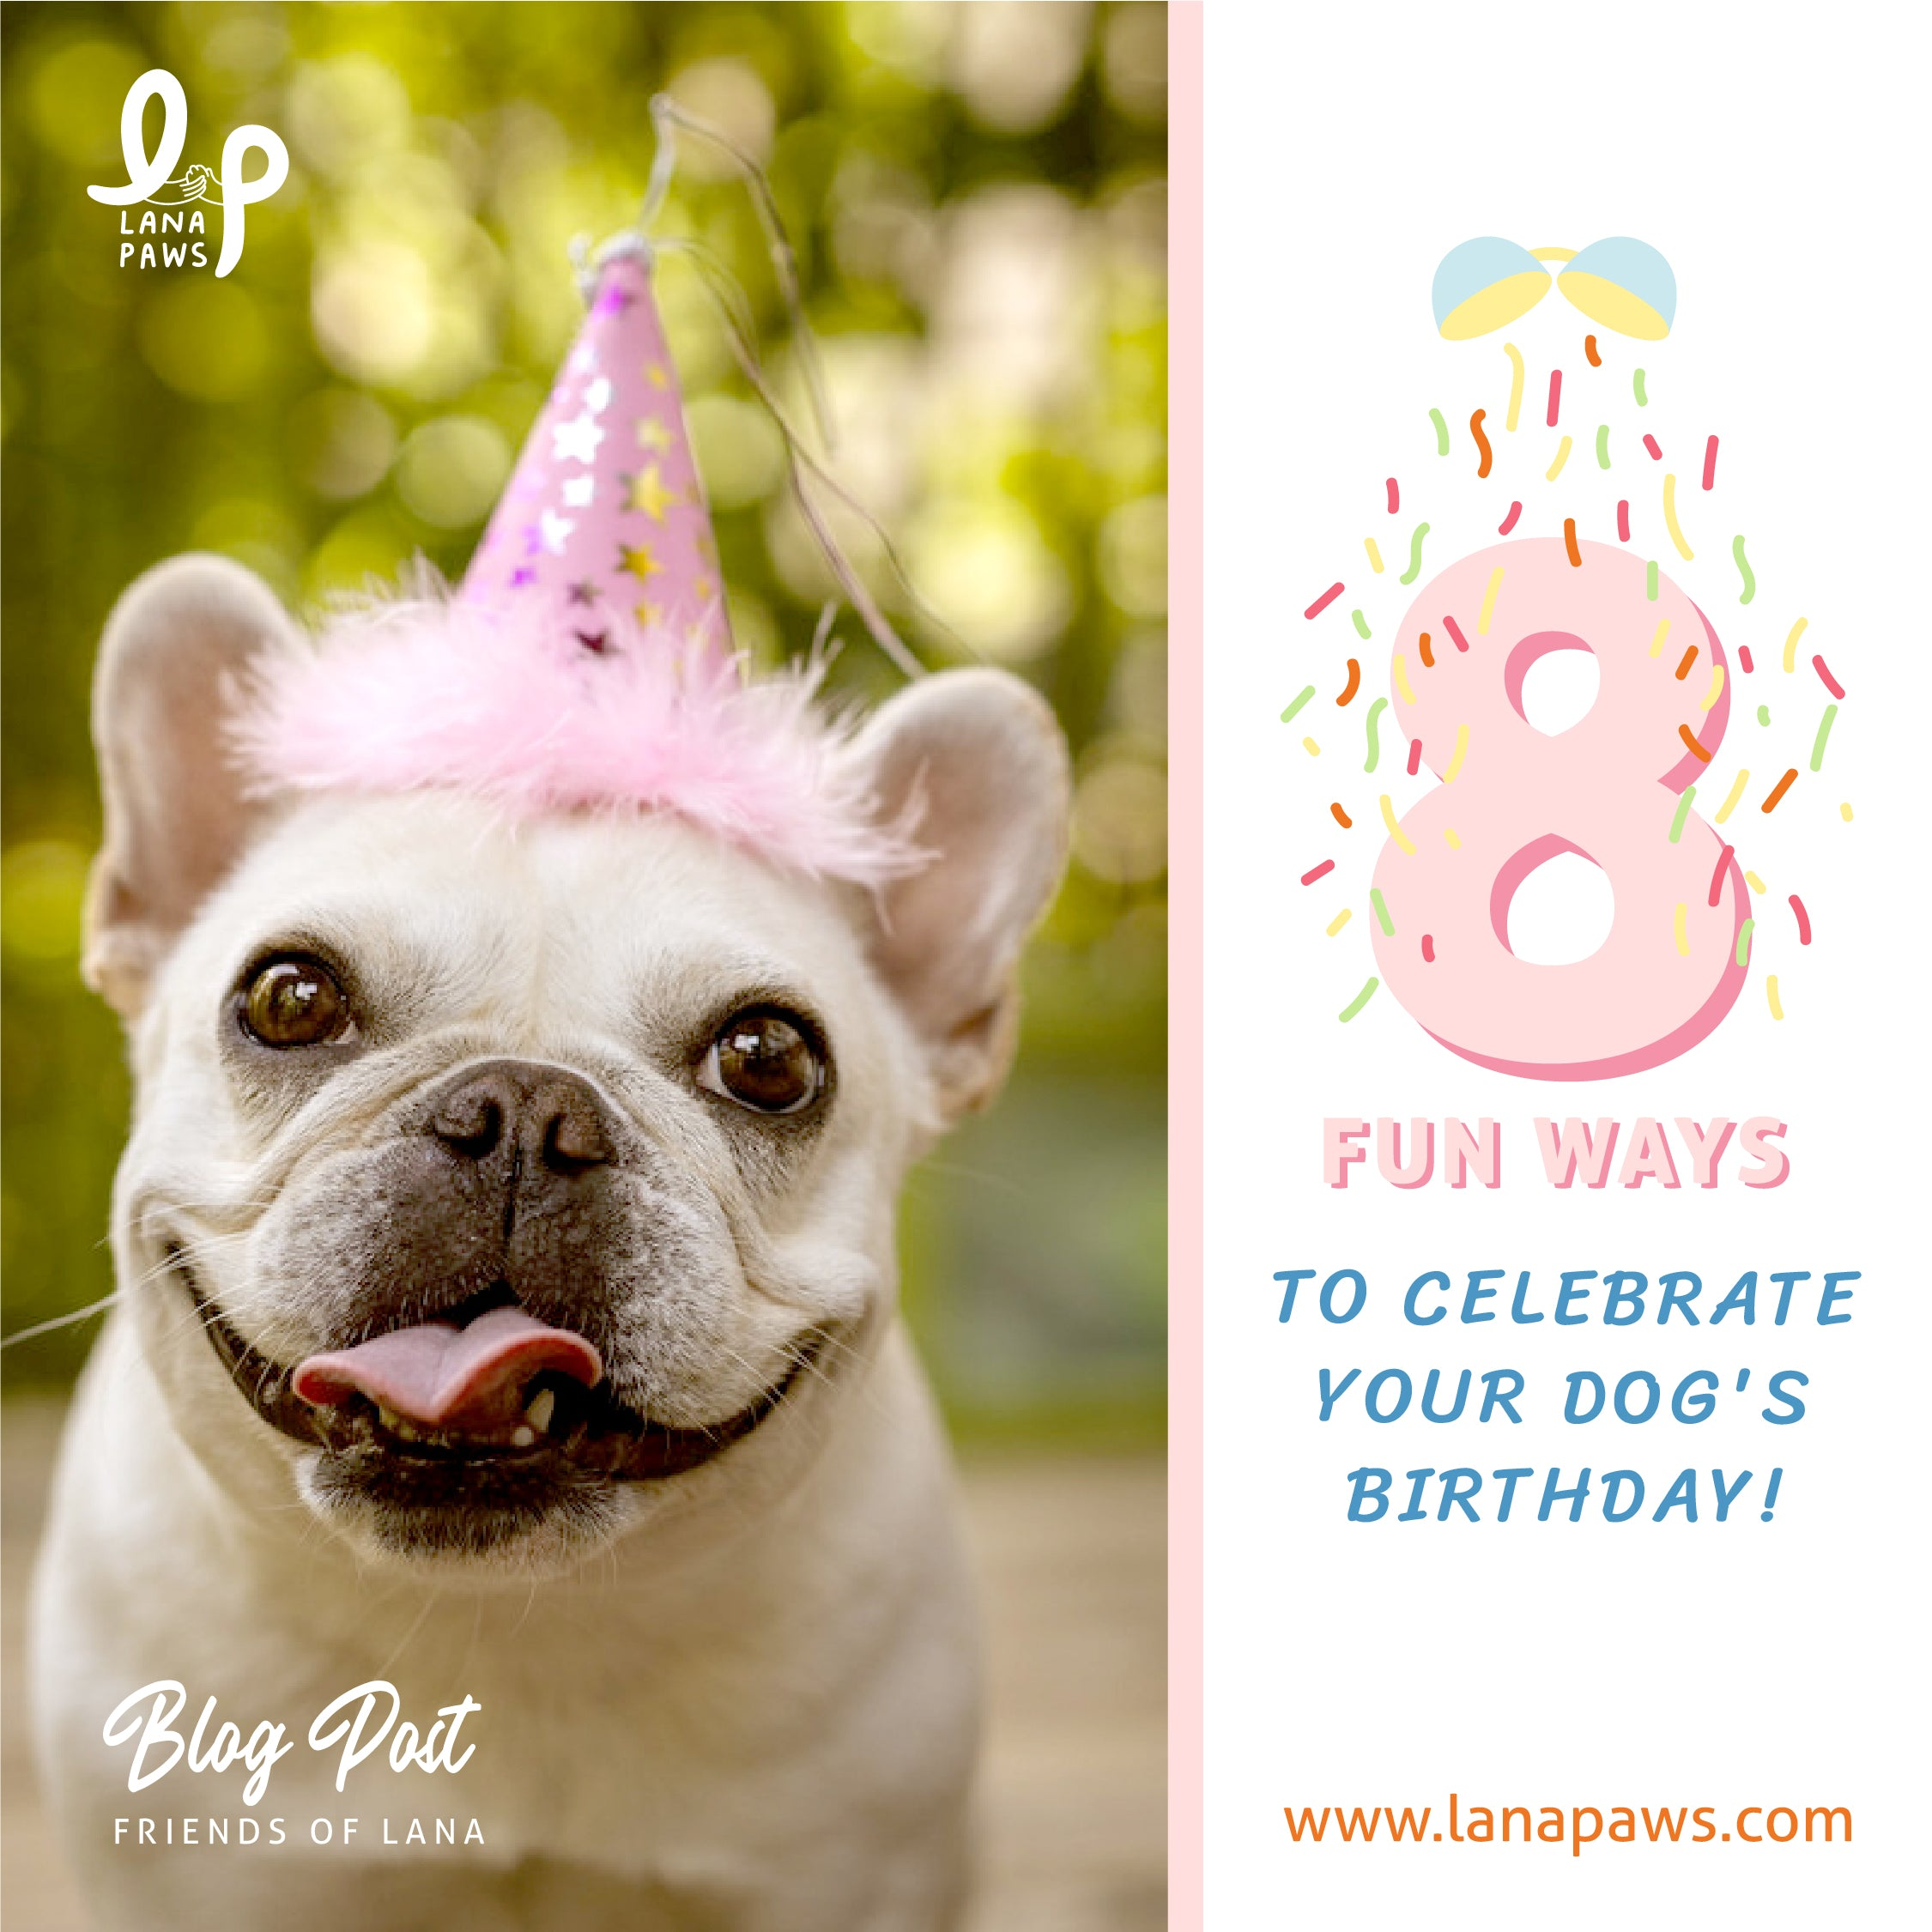 lana paws blog fun ways to celebrate your dog's birthday